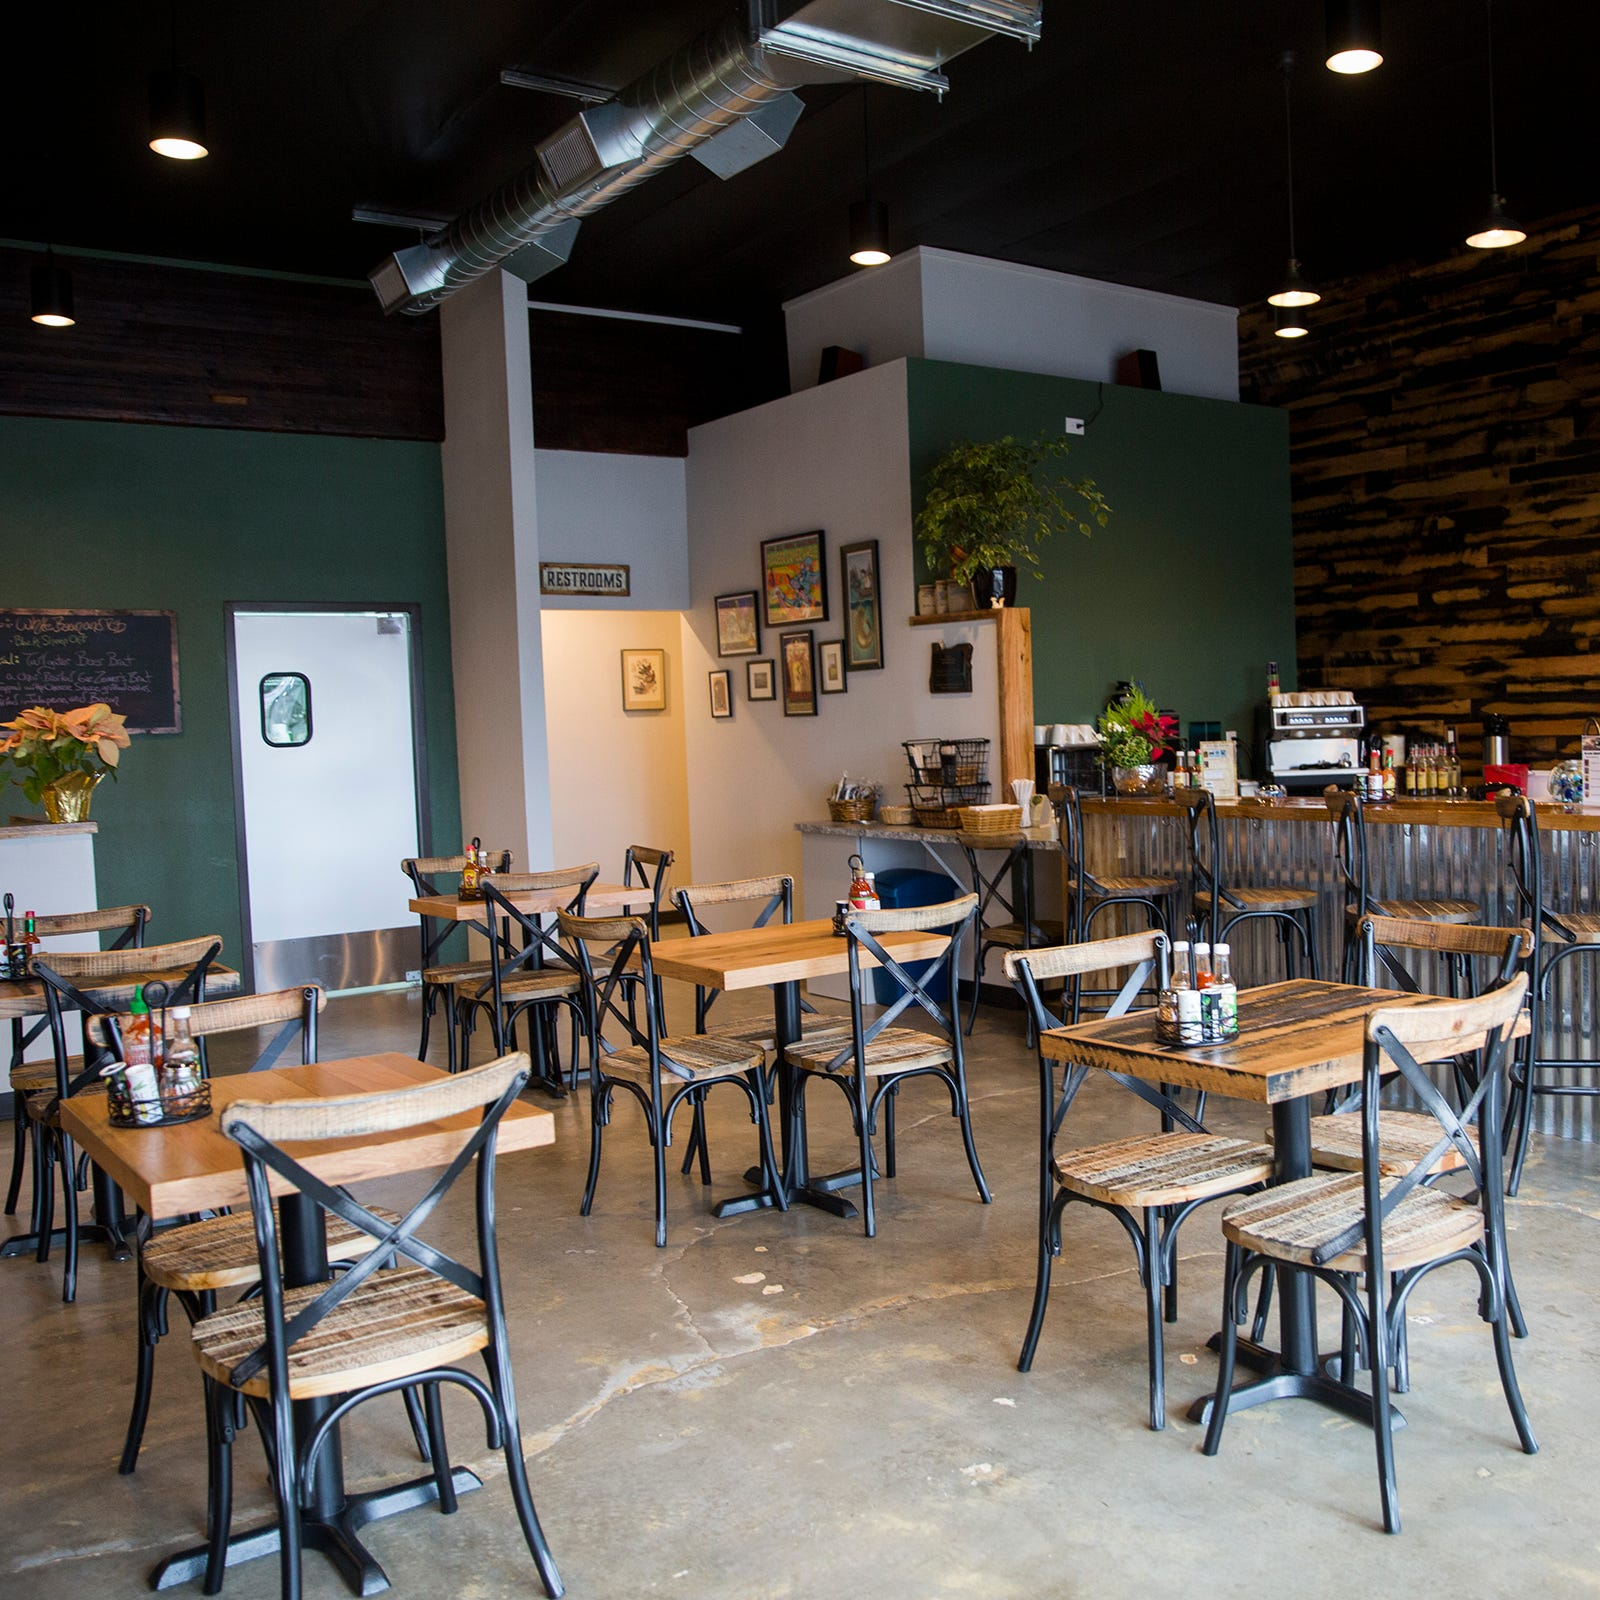 Black Sheep Catering has opened a cozy new café